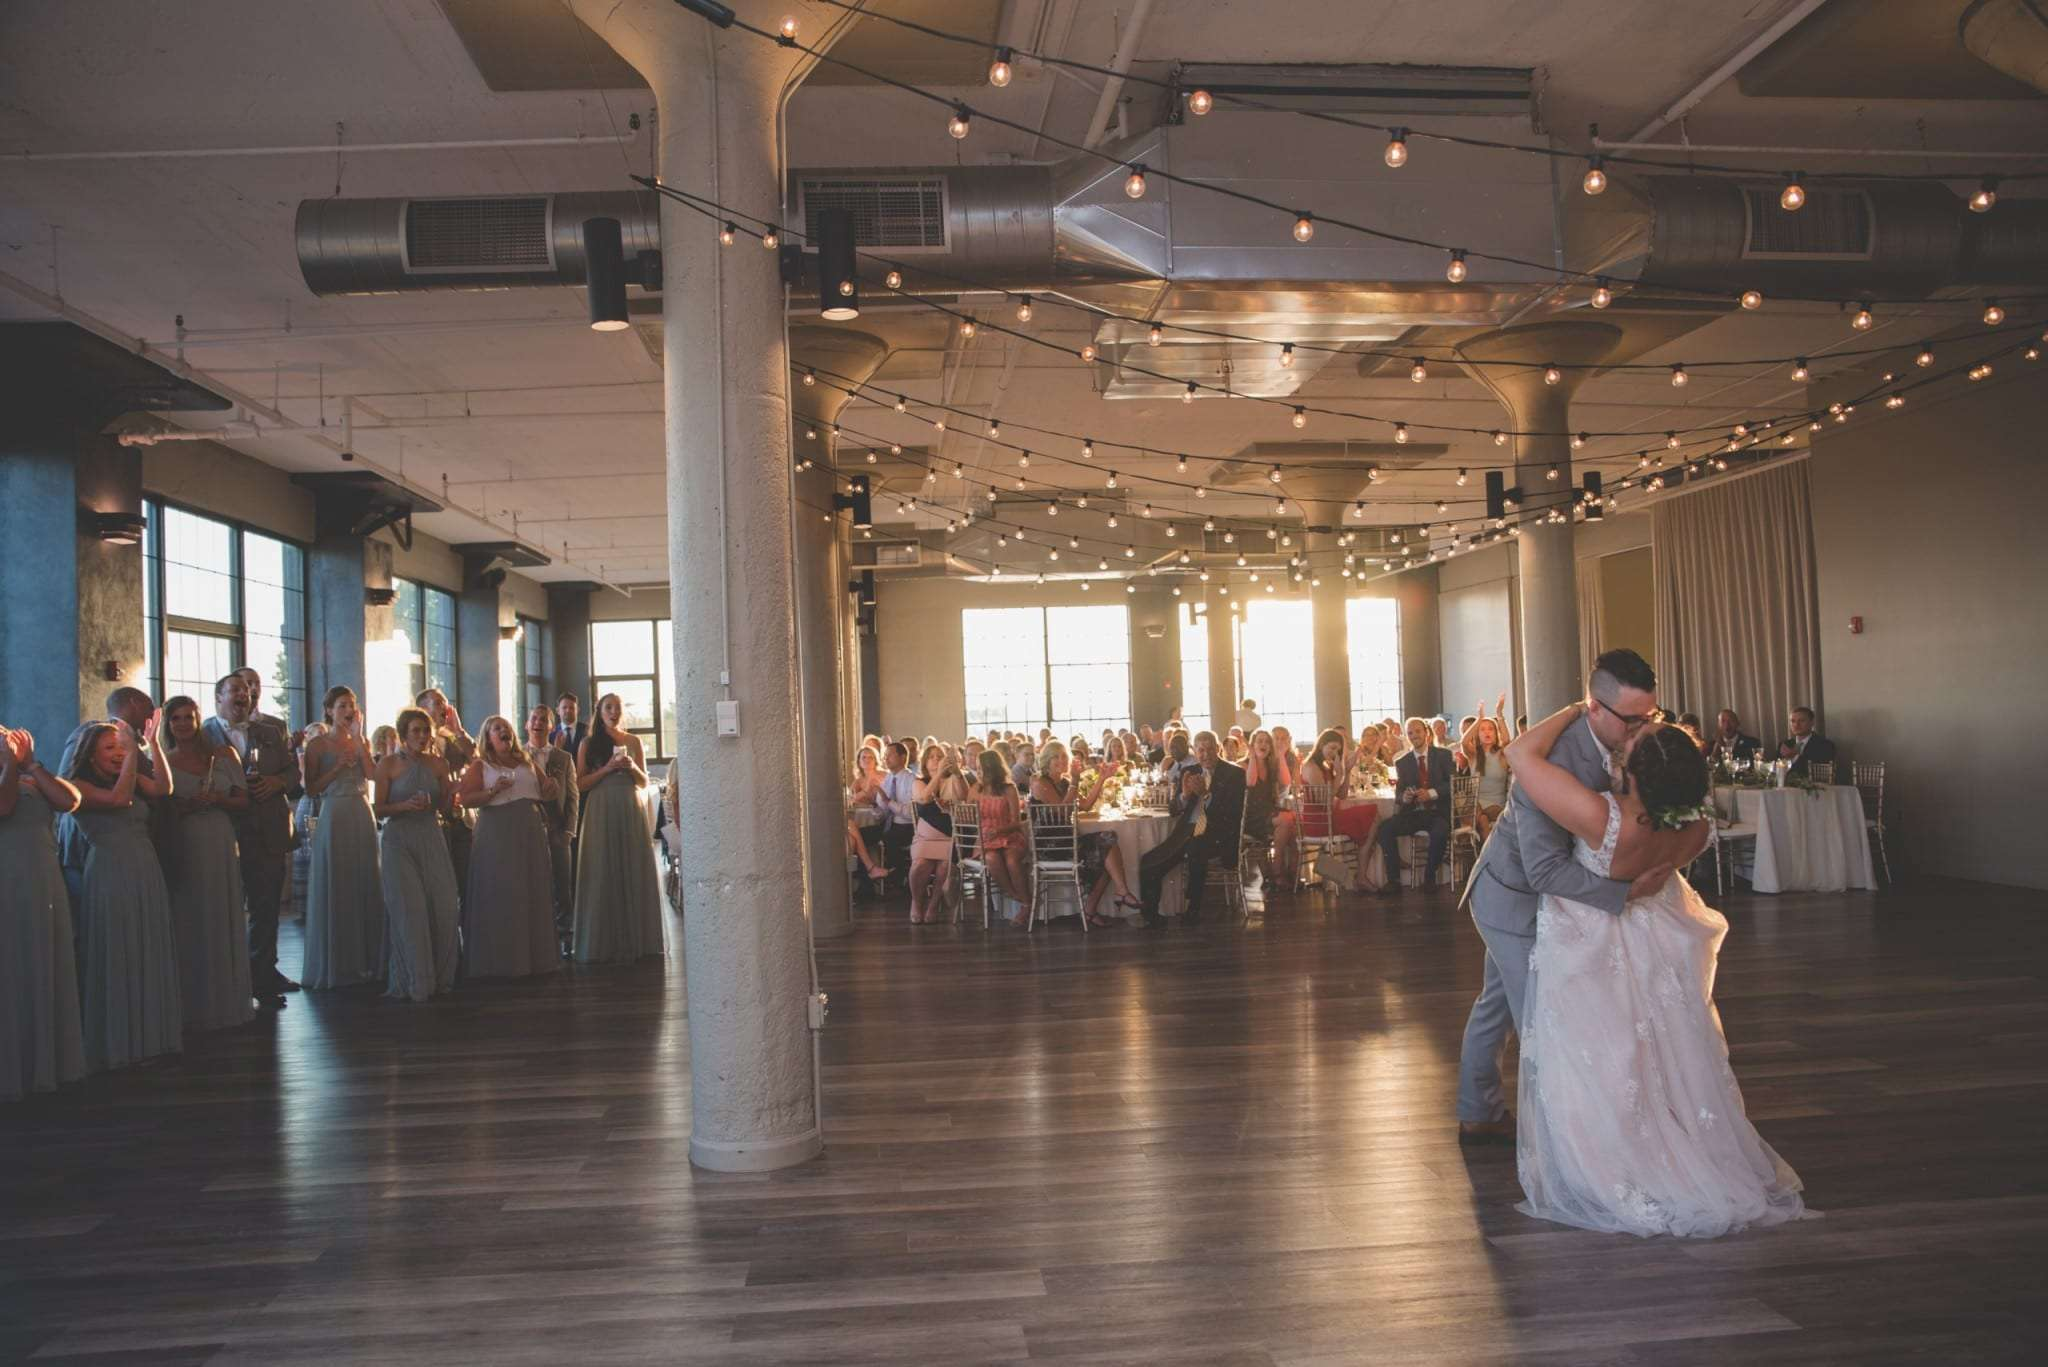 FAME philadelphia wedding venue virtual tour